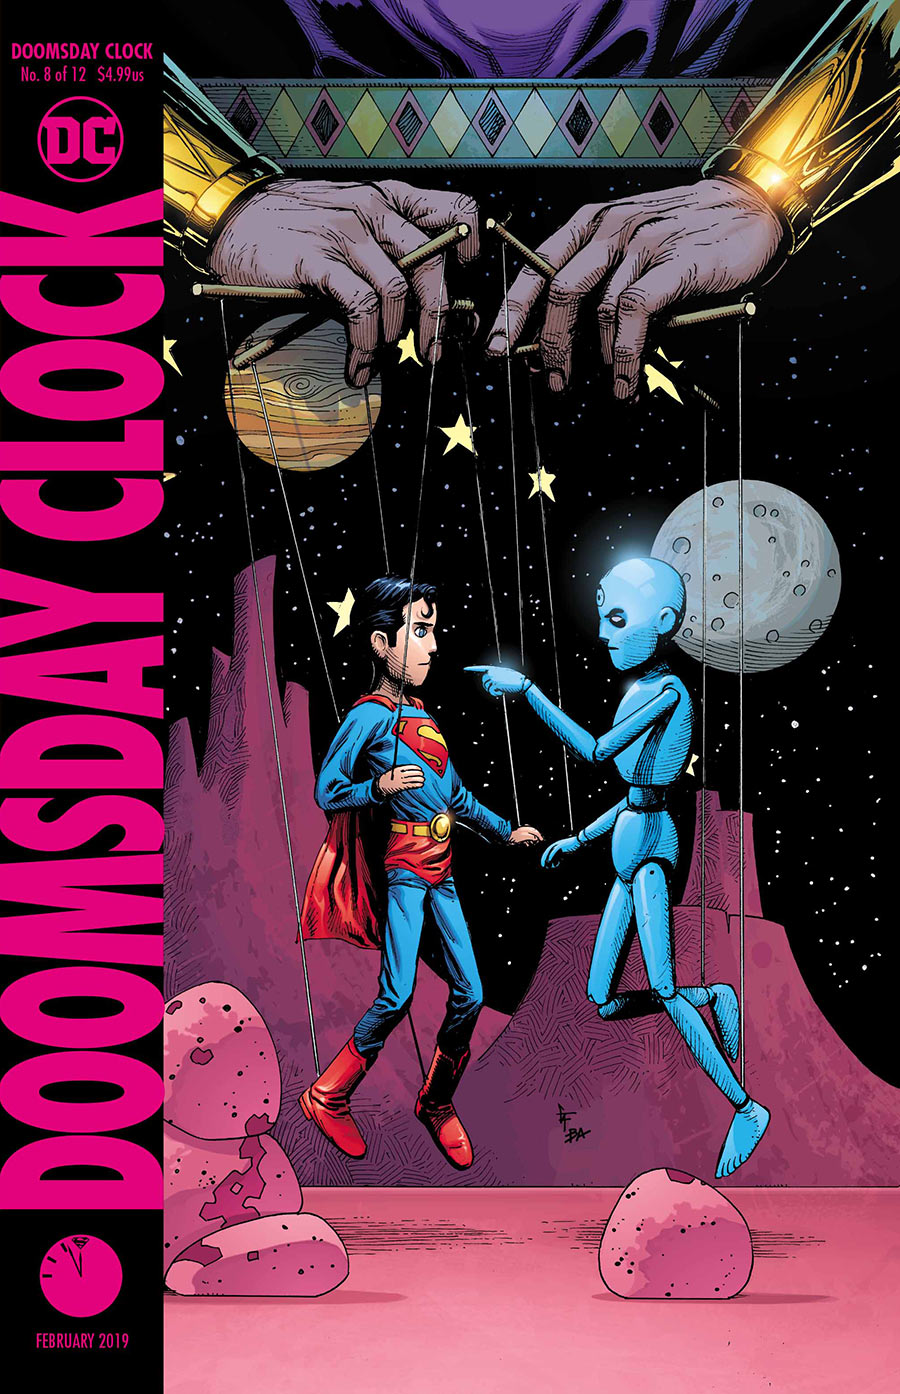 Doomsday Clock 8 - Cover 2 - DC Comics News